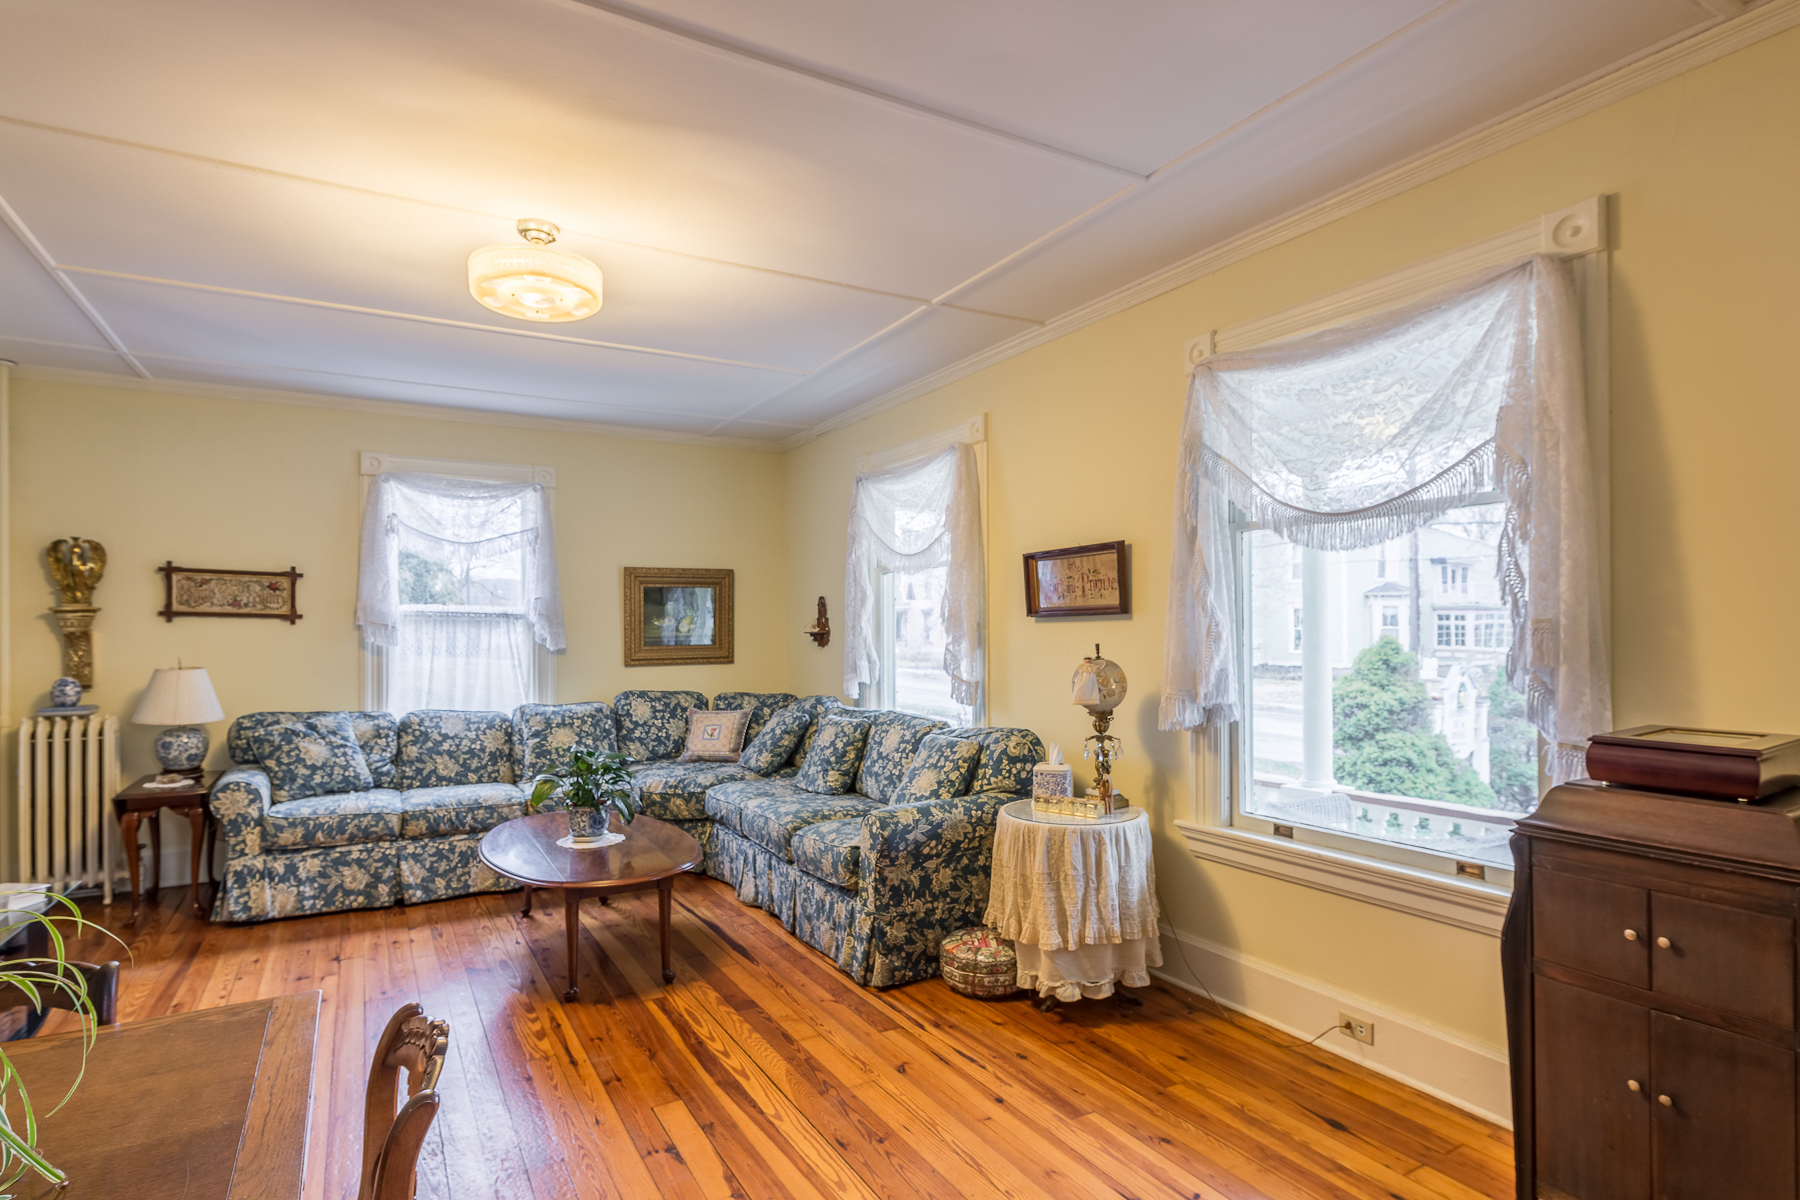 Additional photo for property listing at Victorian Gem in the Heart of Cooperstown 88  Chestnut St Cooperstown, Nueva York 13326 Estados Unidos